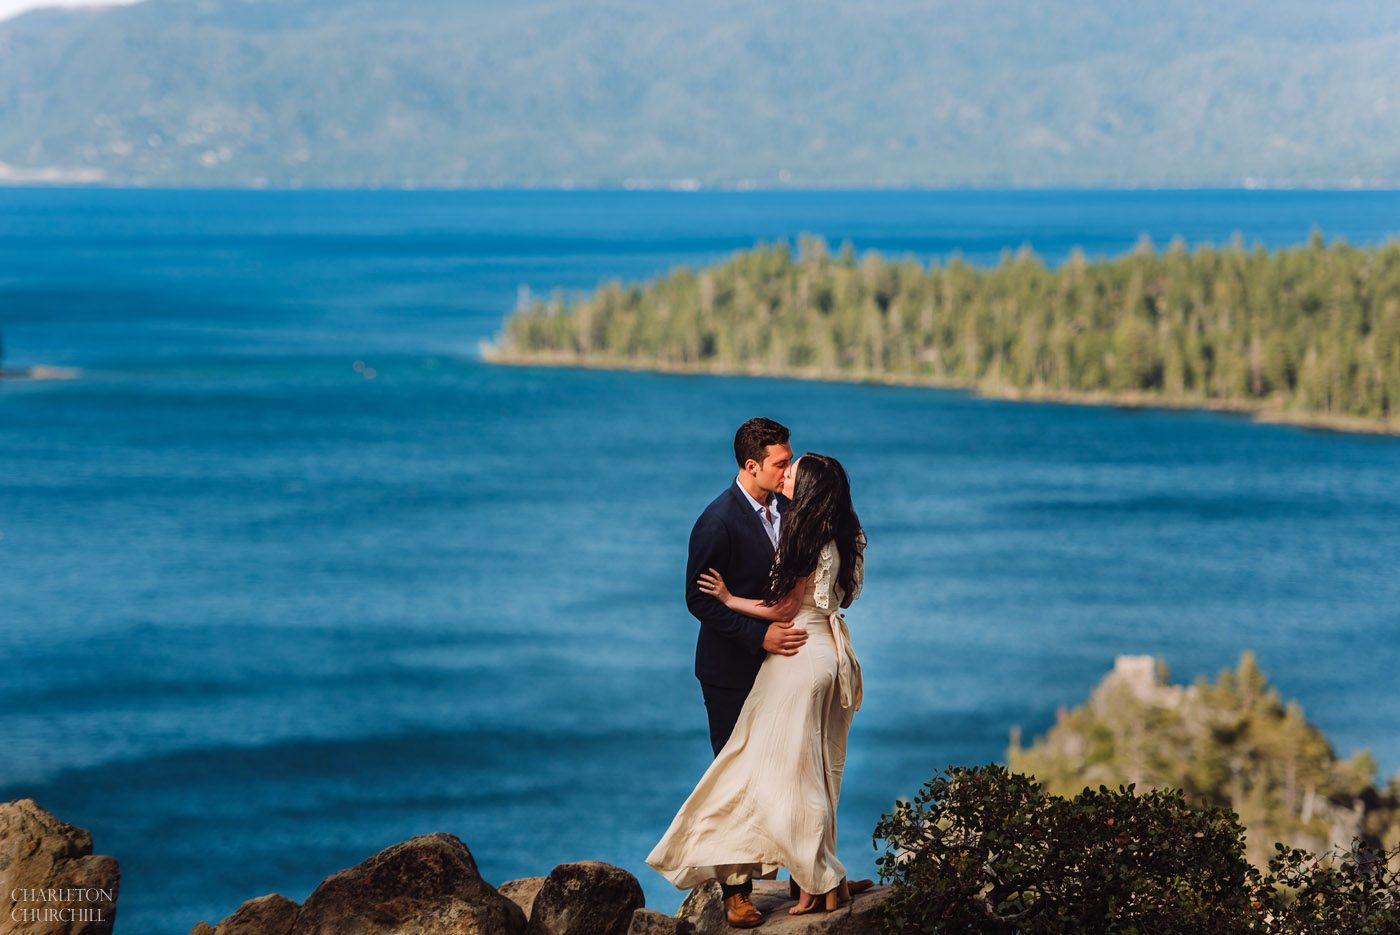 beautiful blue lake tahoe with stylish wedding couple kissing on rocks overlooking scenic views of the lake